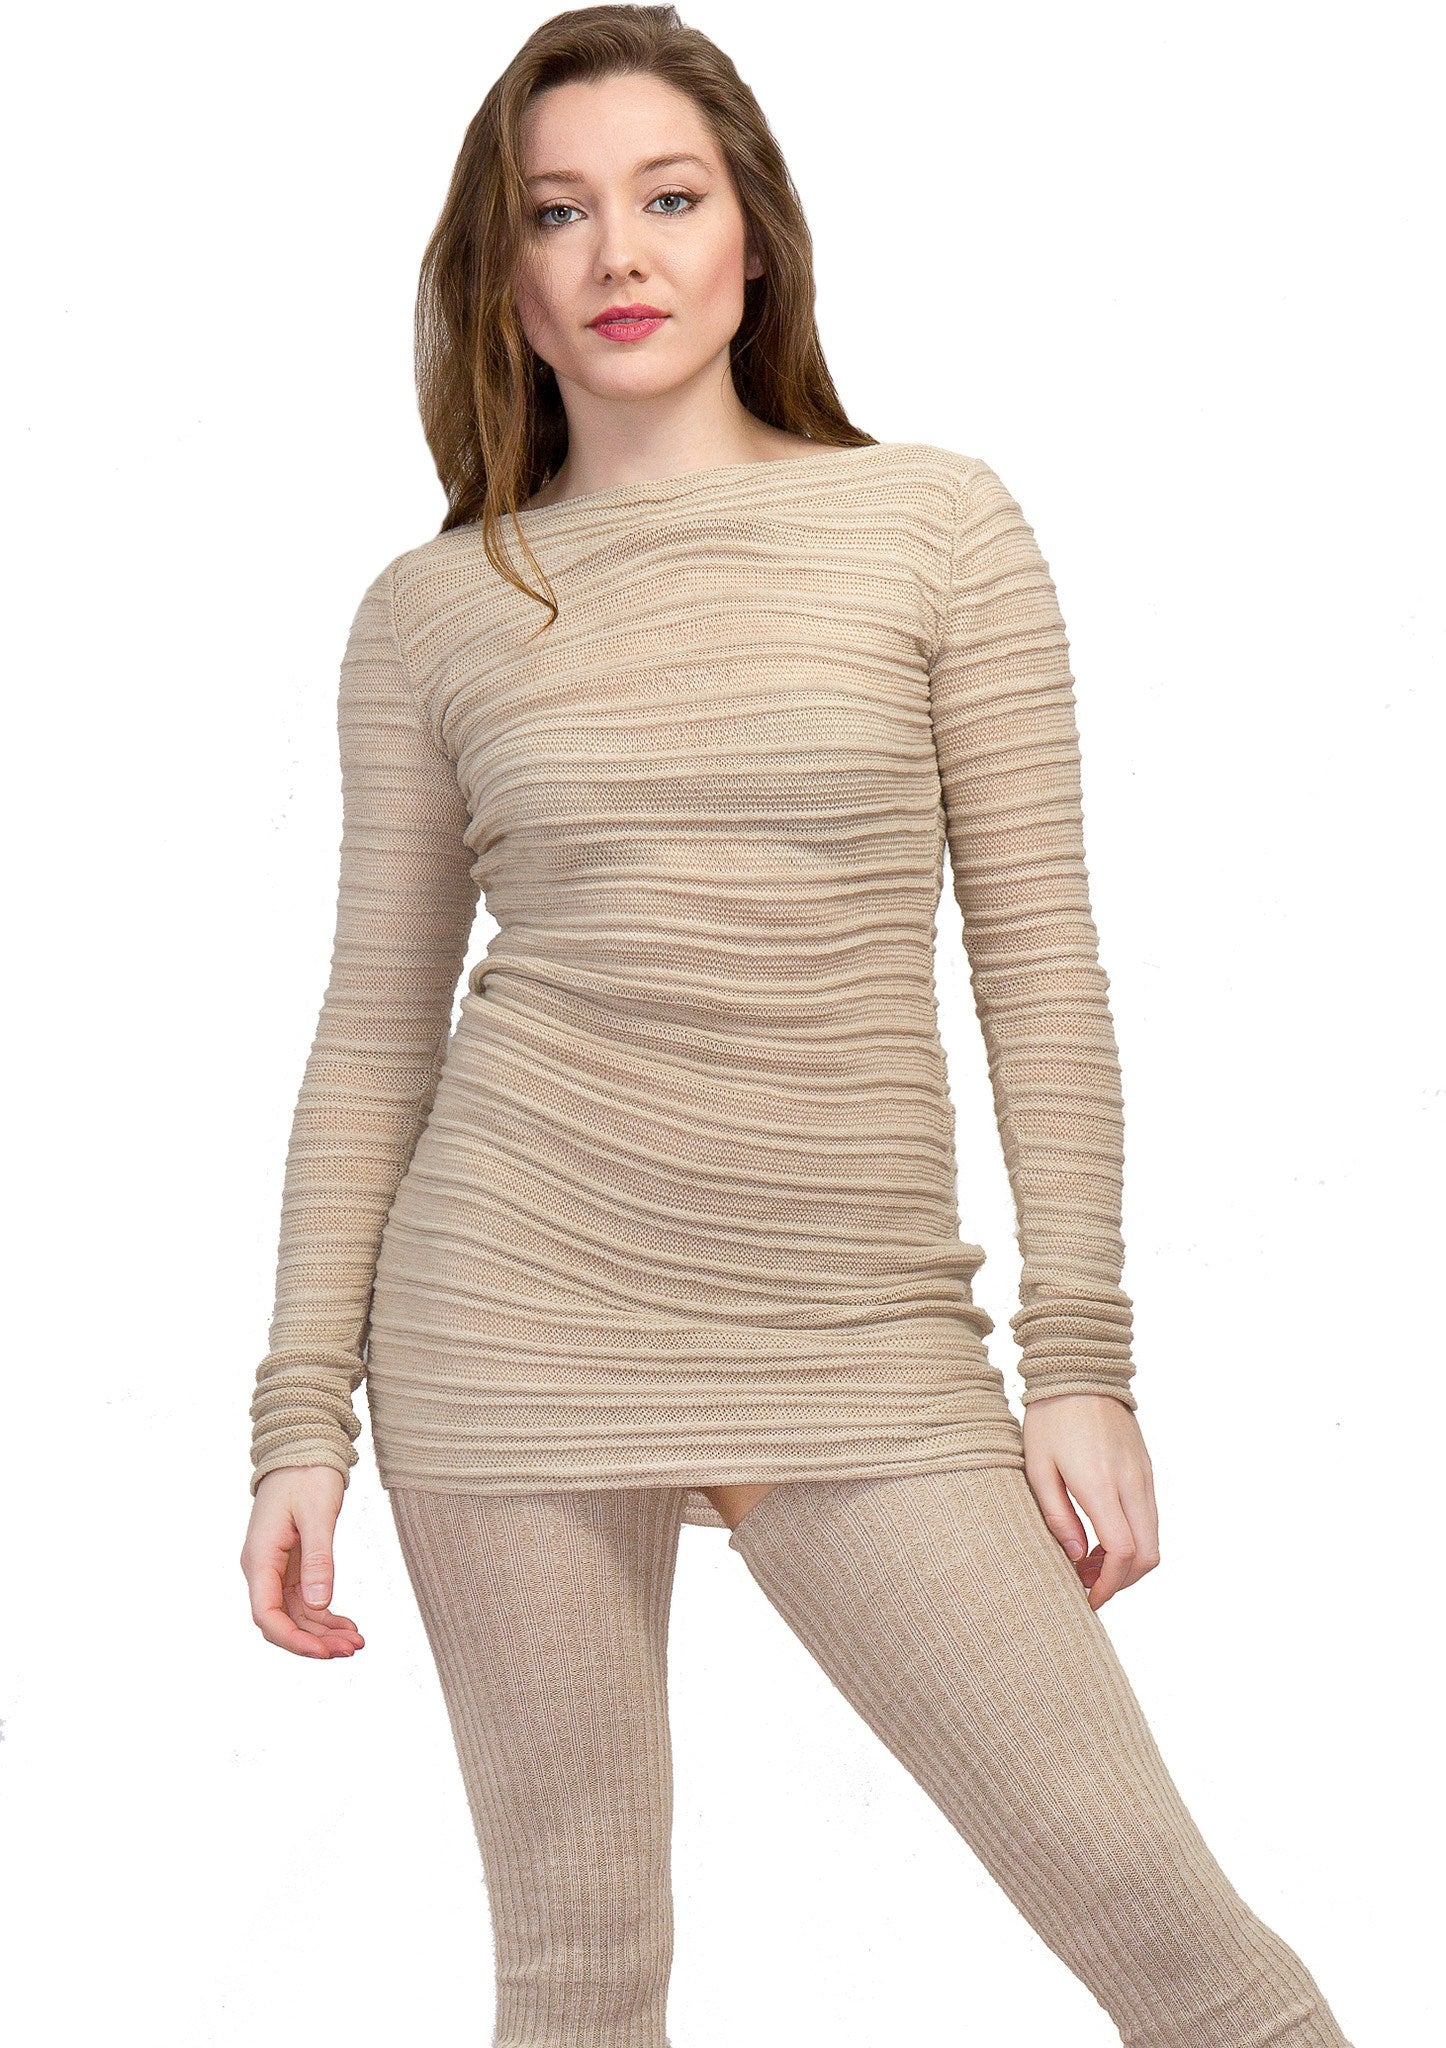 Super Long 40 Inch Thigh High Leg Warmers & Yoga & Dance Mesh Shadow Stripe Sweater Top KD dance @KDdanceNewYork #MadeInUSA - 6